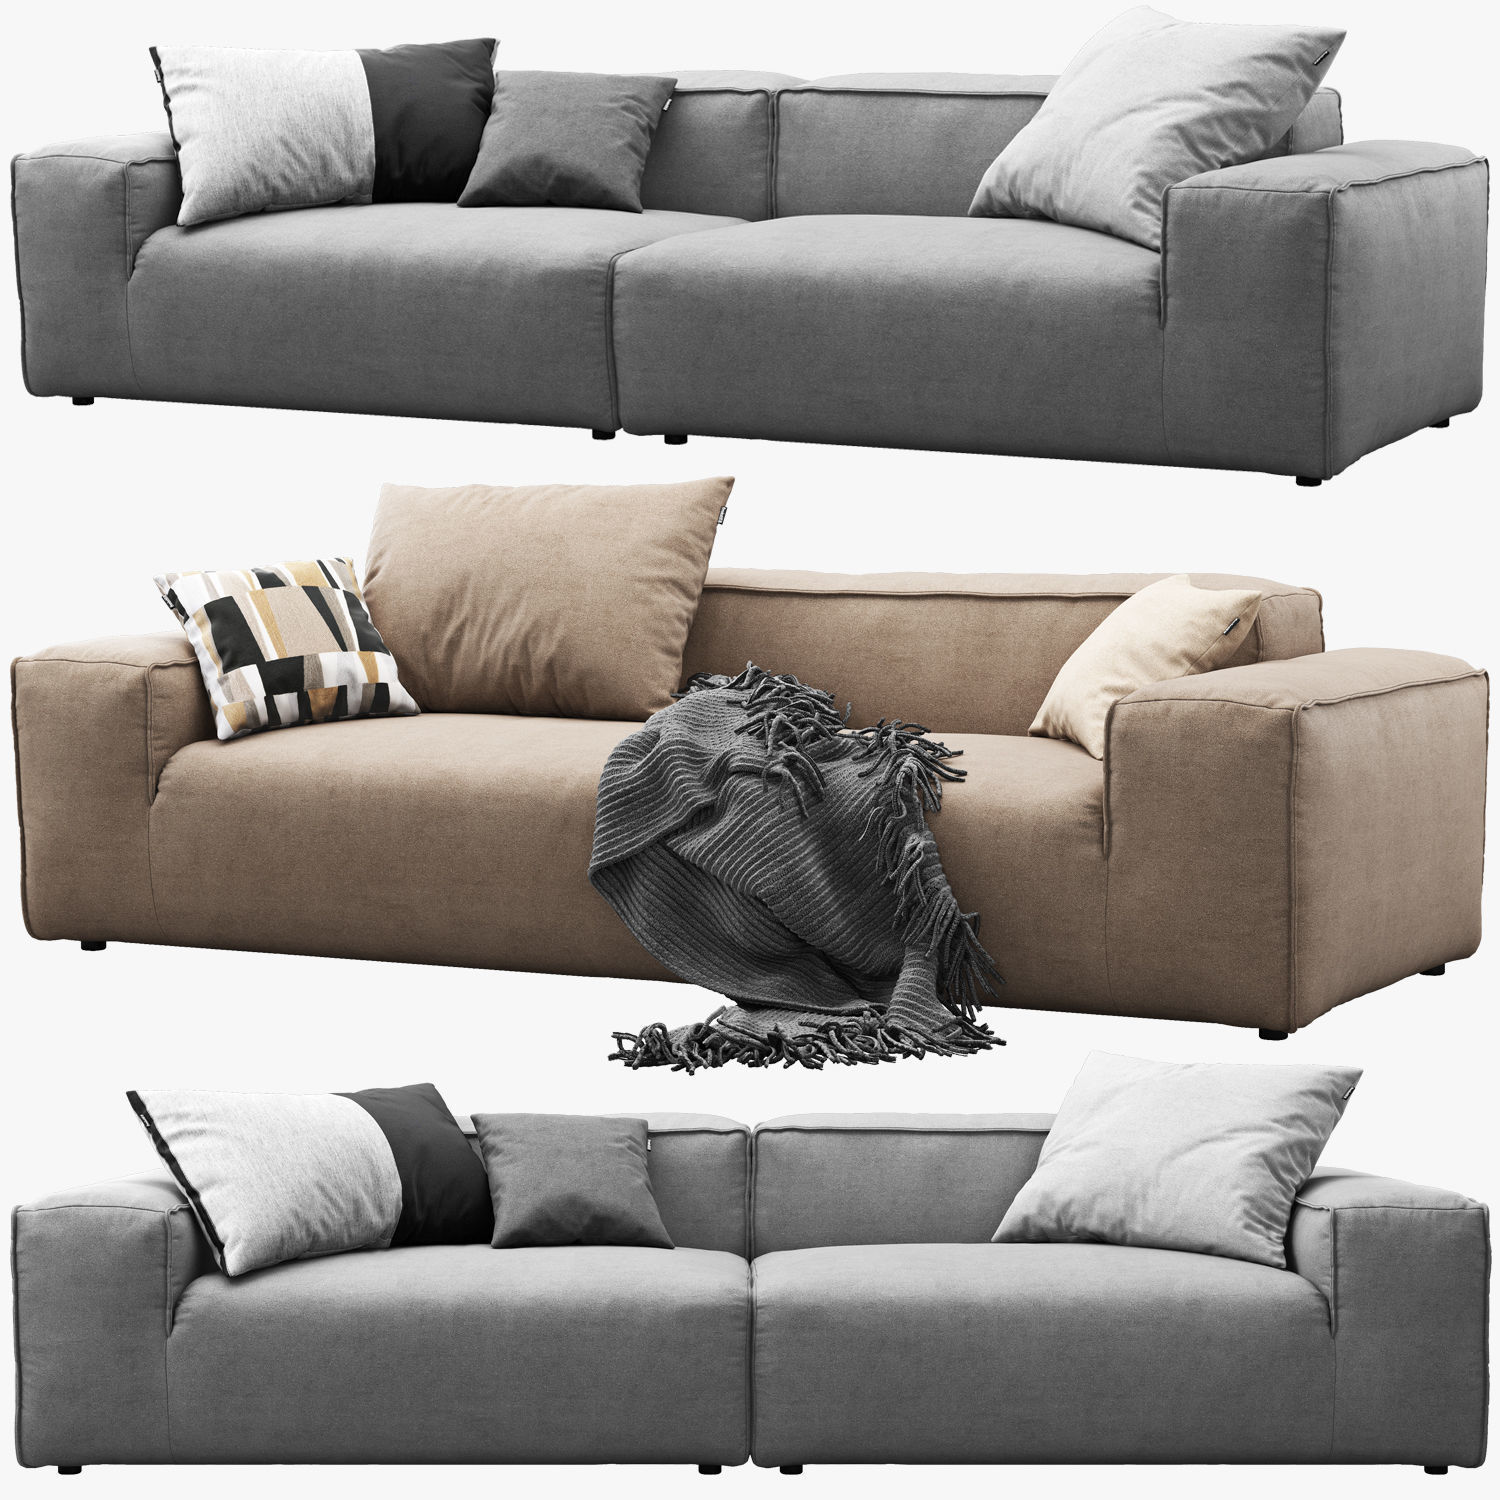 Freistil Sofa Rolf Benz Freistil 175 Modular Sofa Set 1 3d | Cgtrader